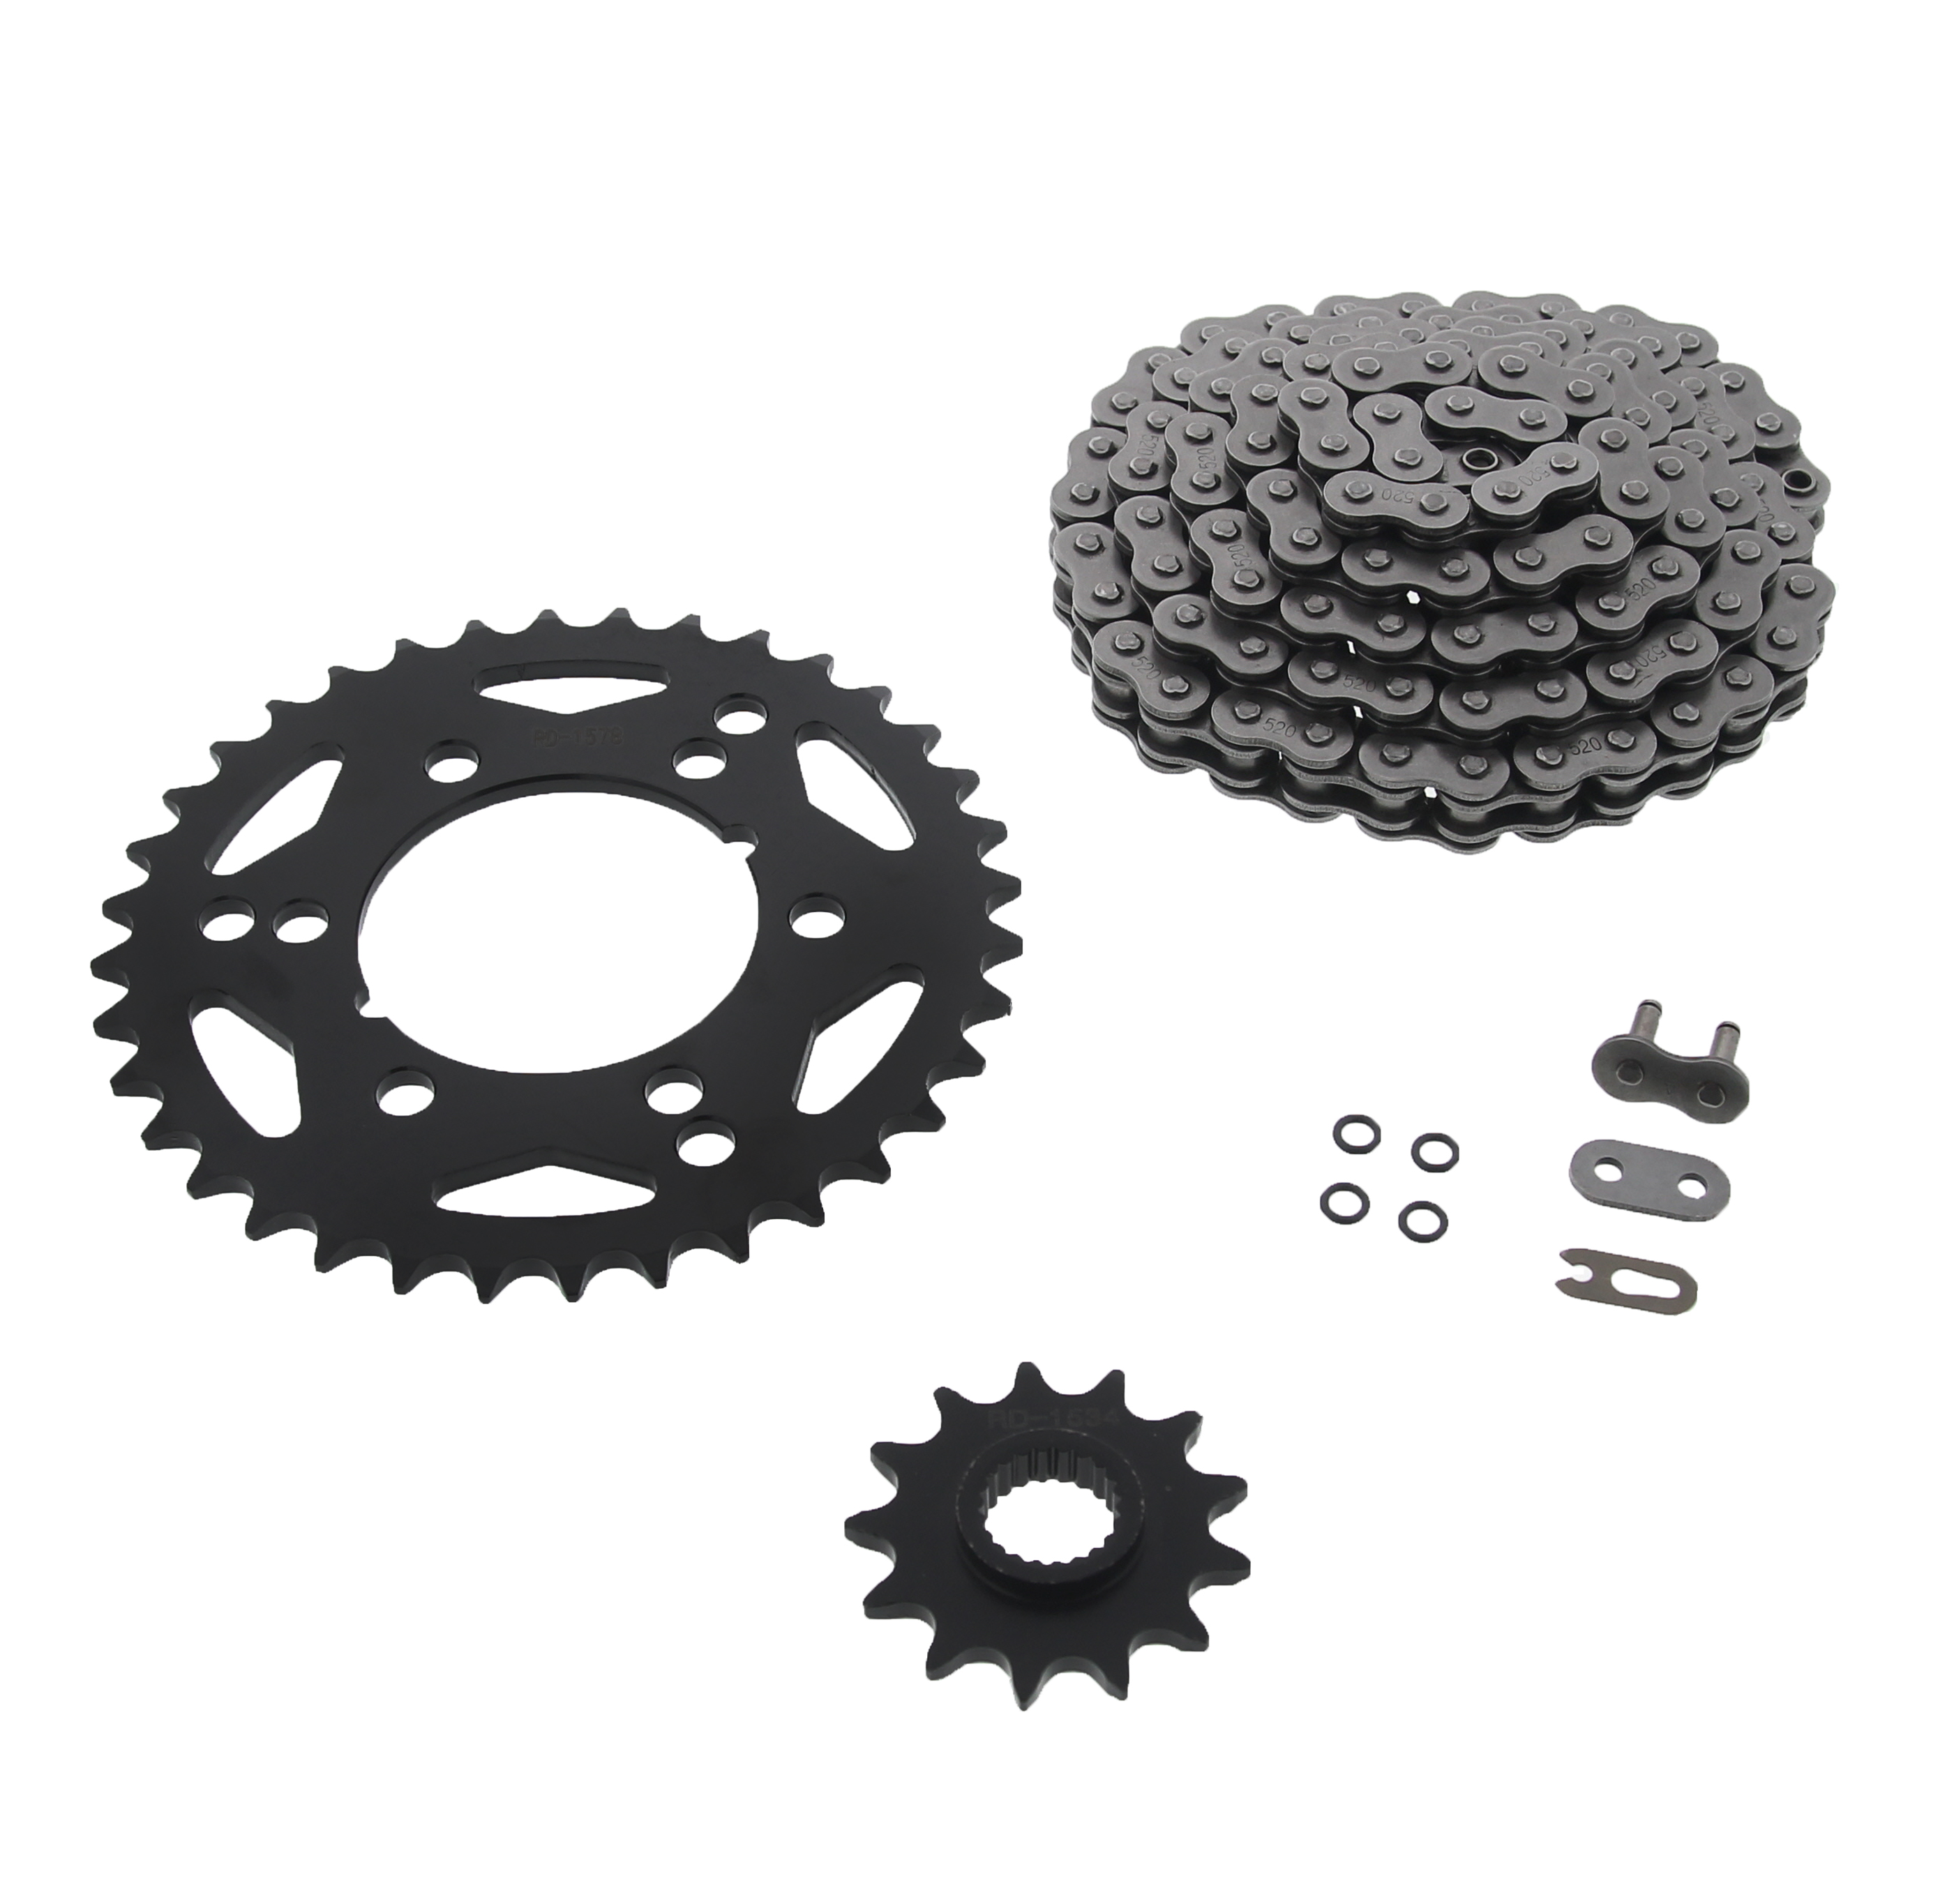 2000-2002 Polaris Trail Boss 325 Race-Driven 11 Tooth Front Sprocket 4 Wheeler